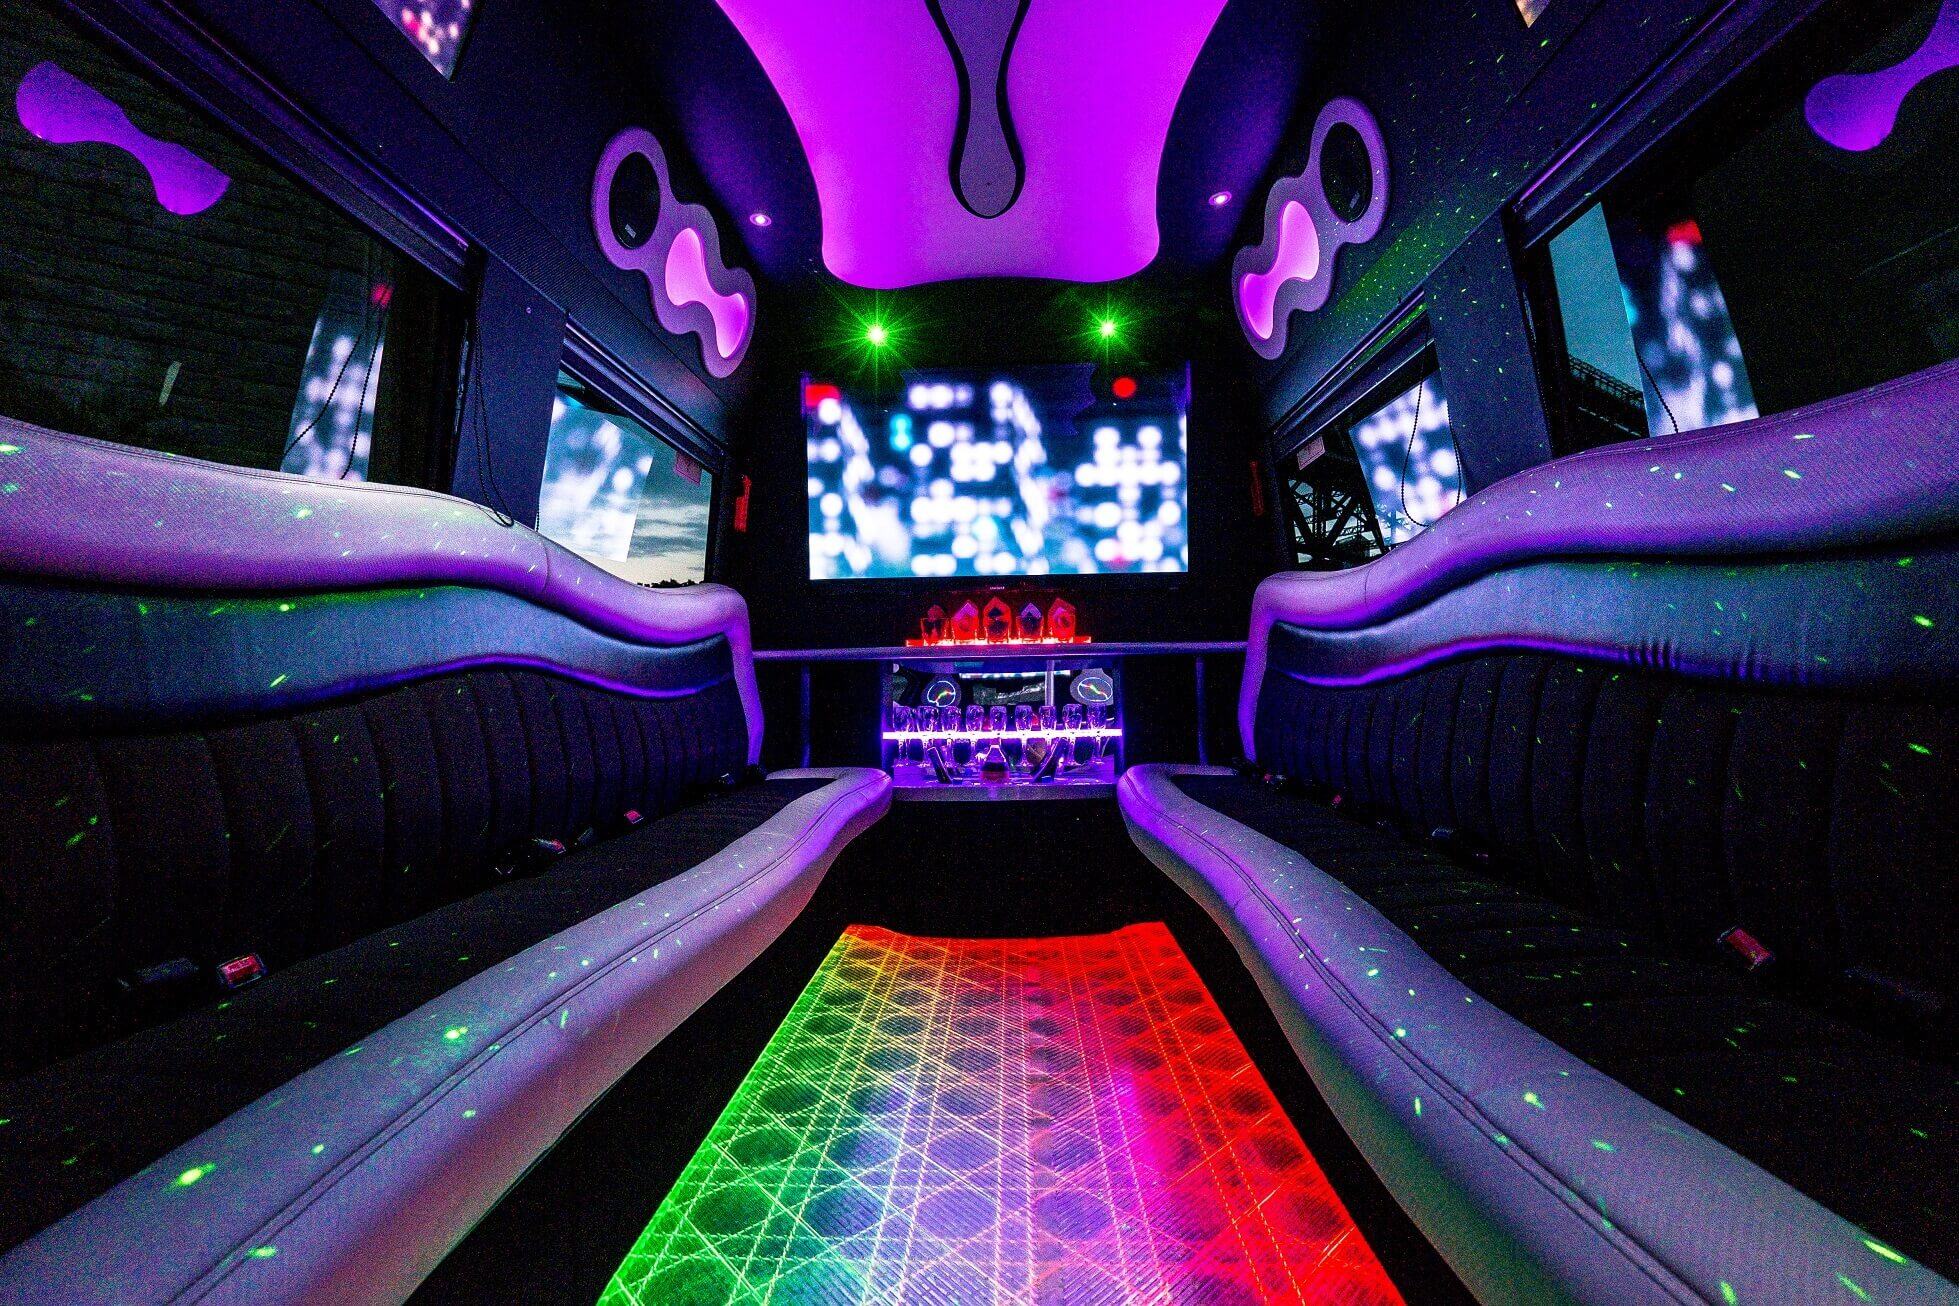 kids Party Bus, Teens Party Bus, Teens Party Limo, Kids Party Limo, sydney party limos, limo hire sydney, school formal limo hire, school formal party limo hire, party bus hire, party bus central coast, southern highlands winery tour, hunter valley transfer, hens party bus, hens party limo